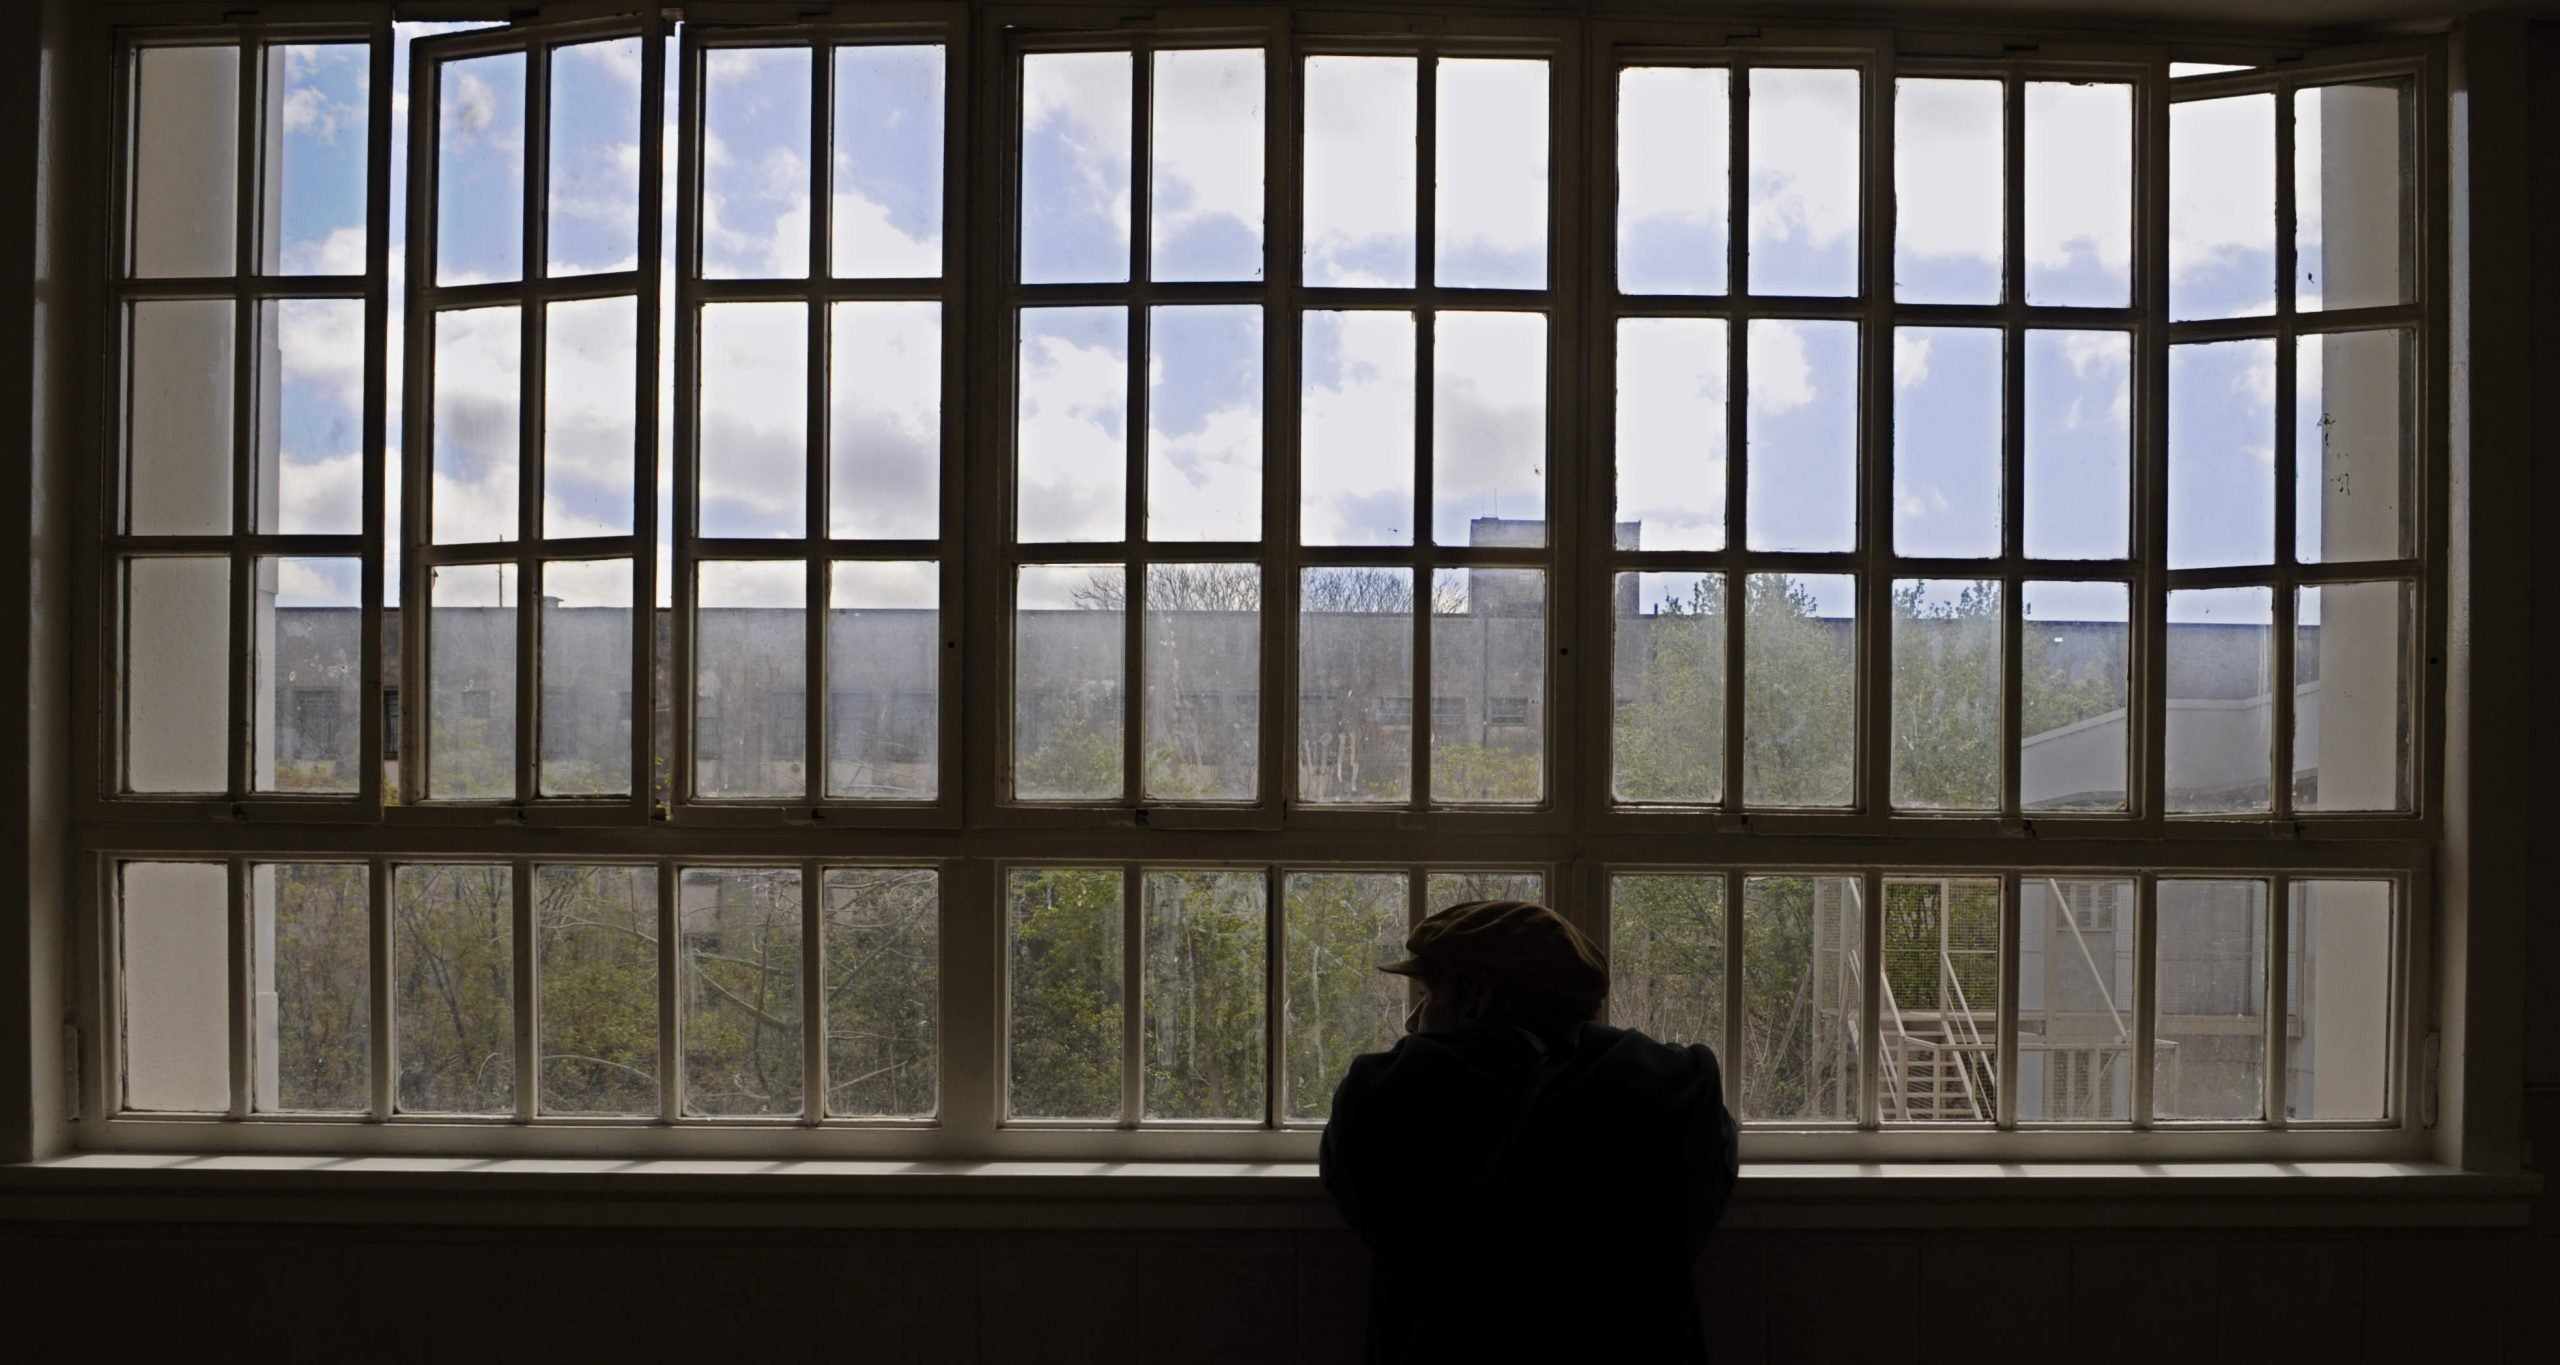 The Italian psychiatrist who ended the age of the mental asylum